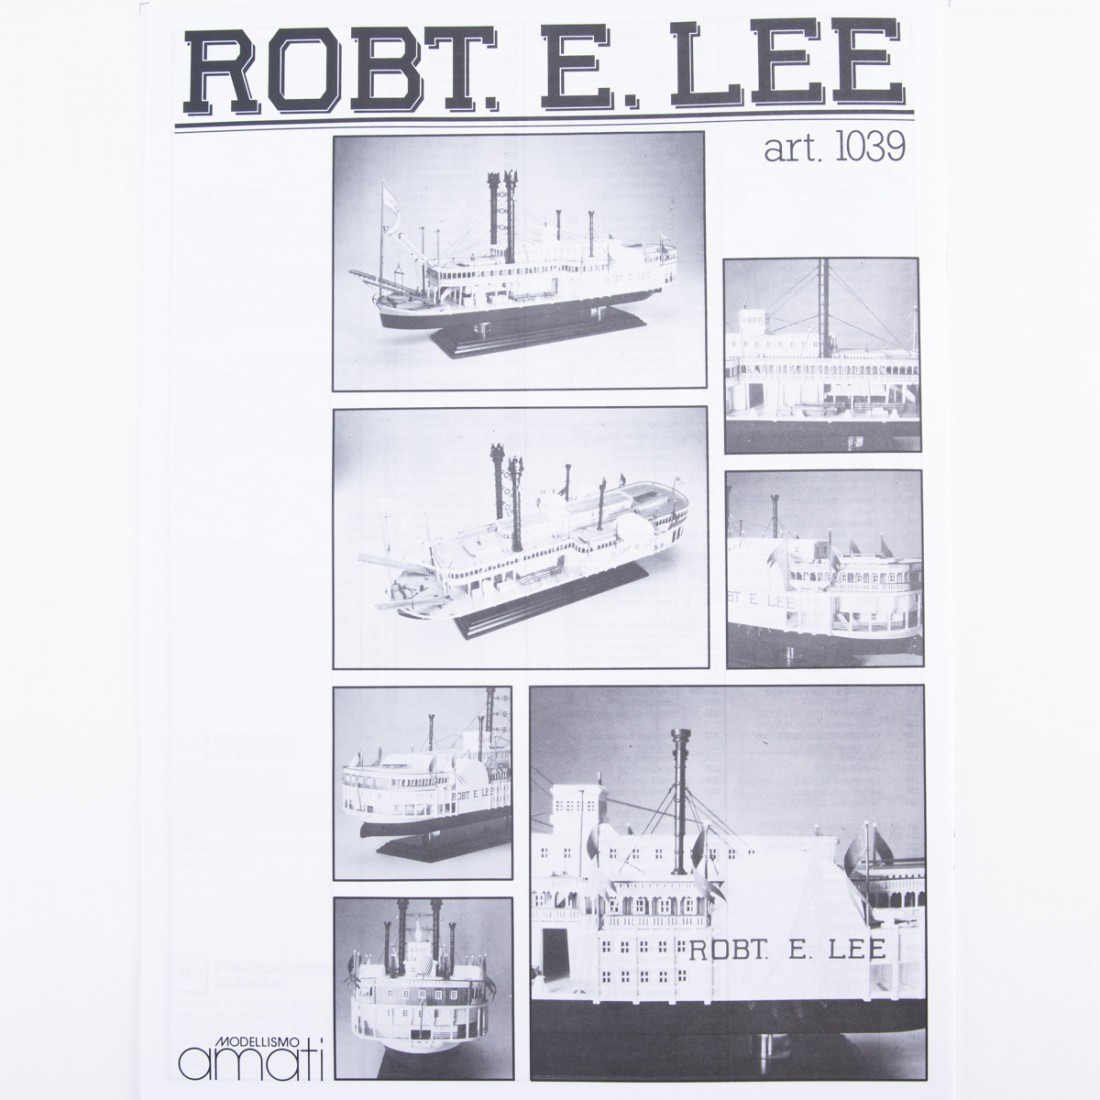 Plan Robert E. Lee